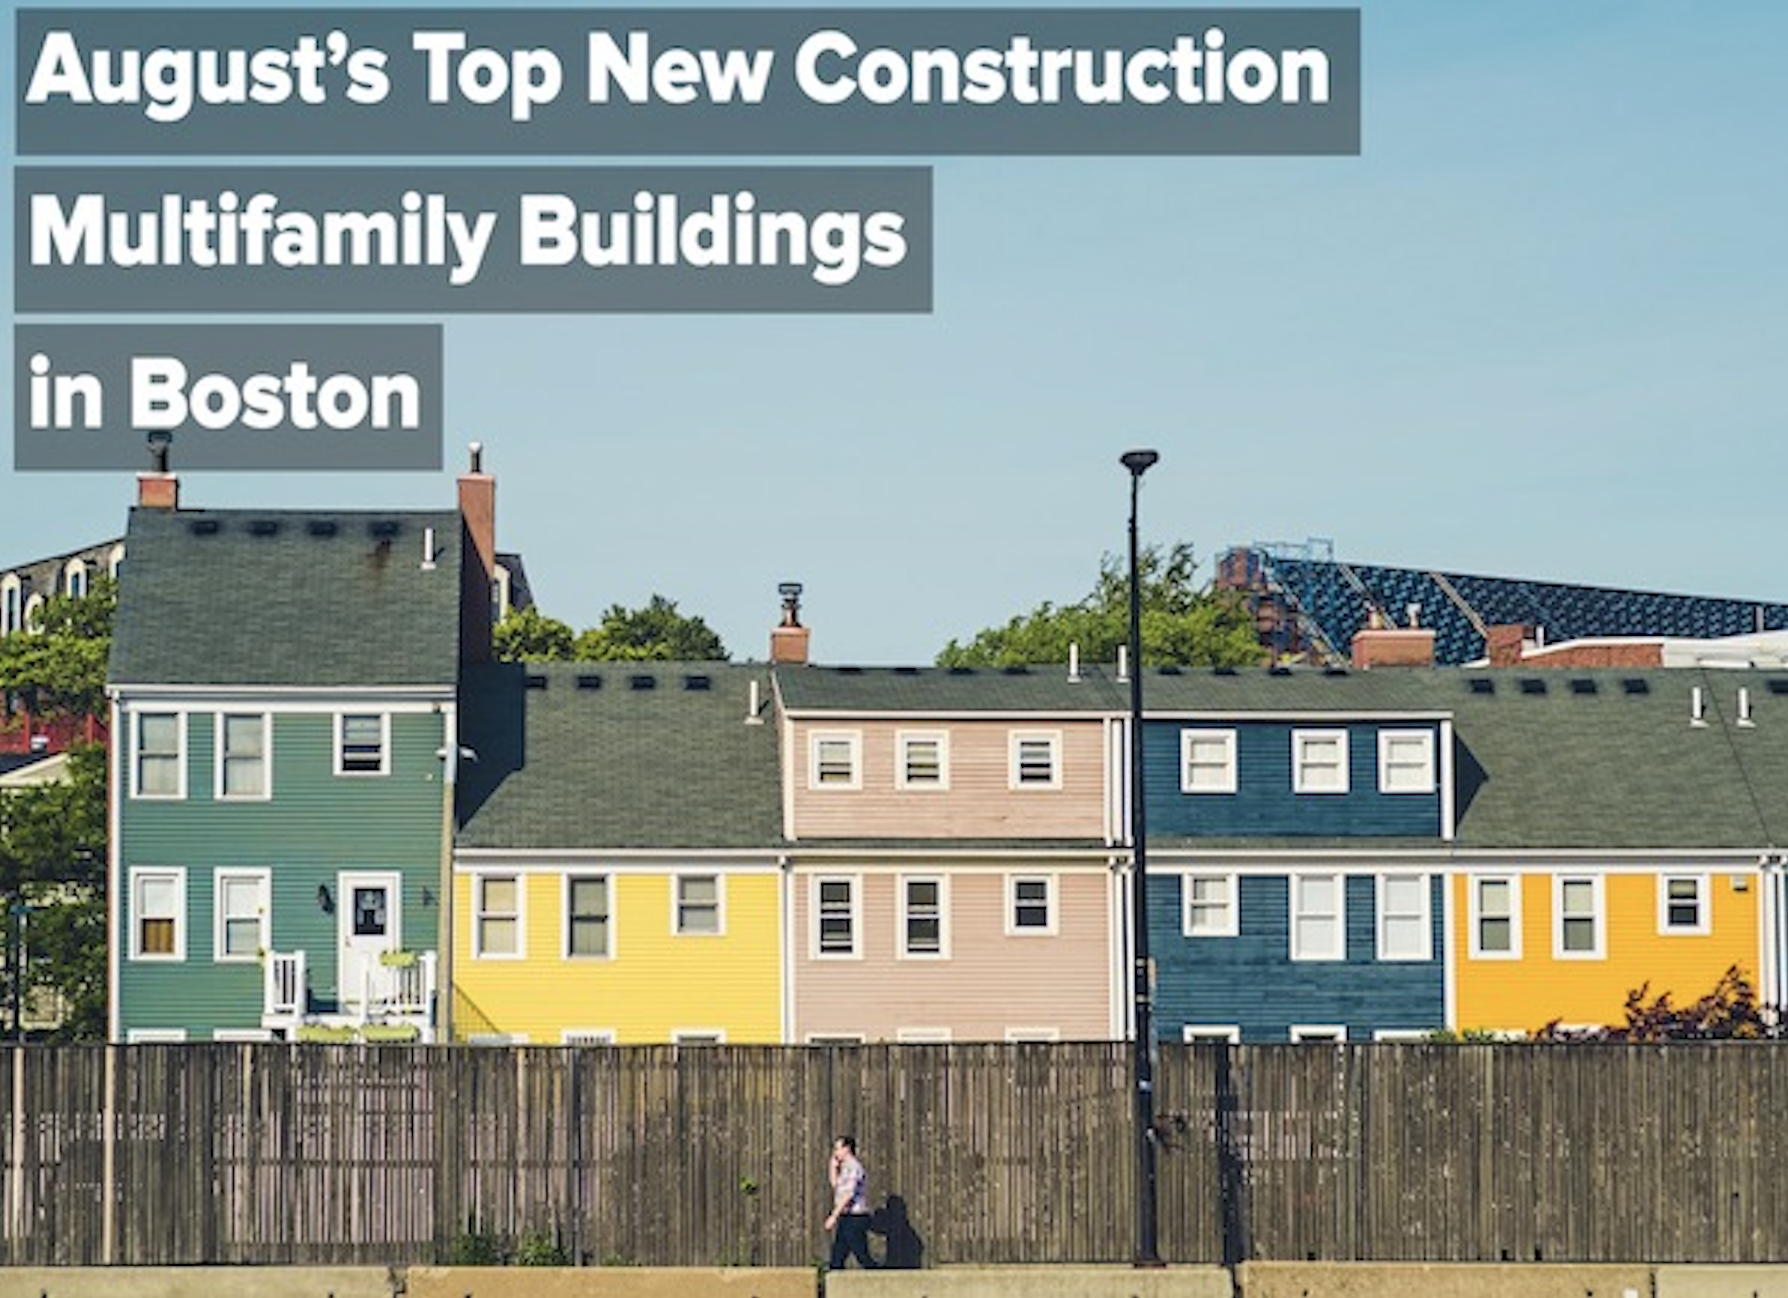 August 2019 Top New Multifamily